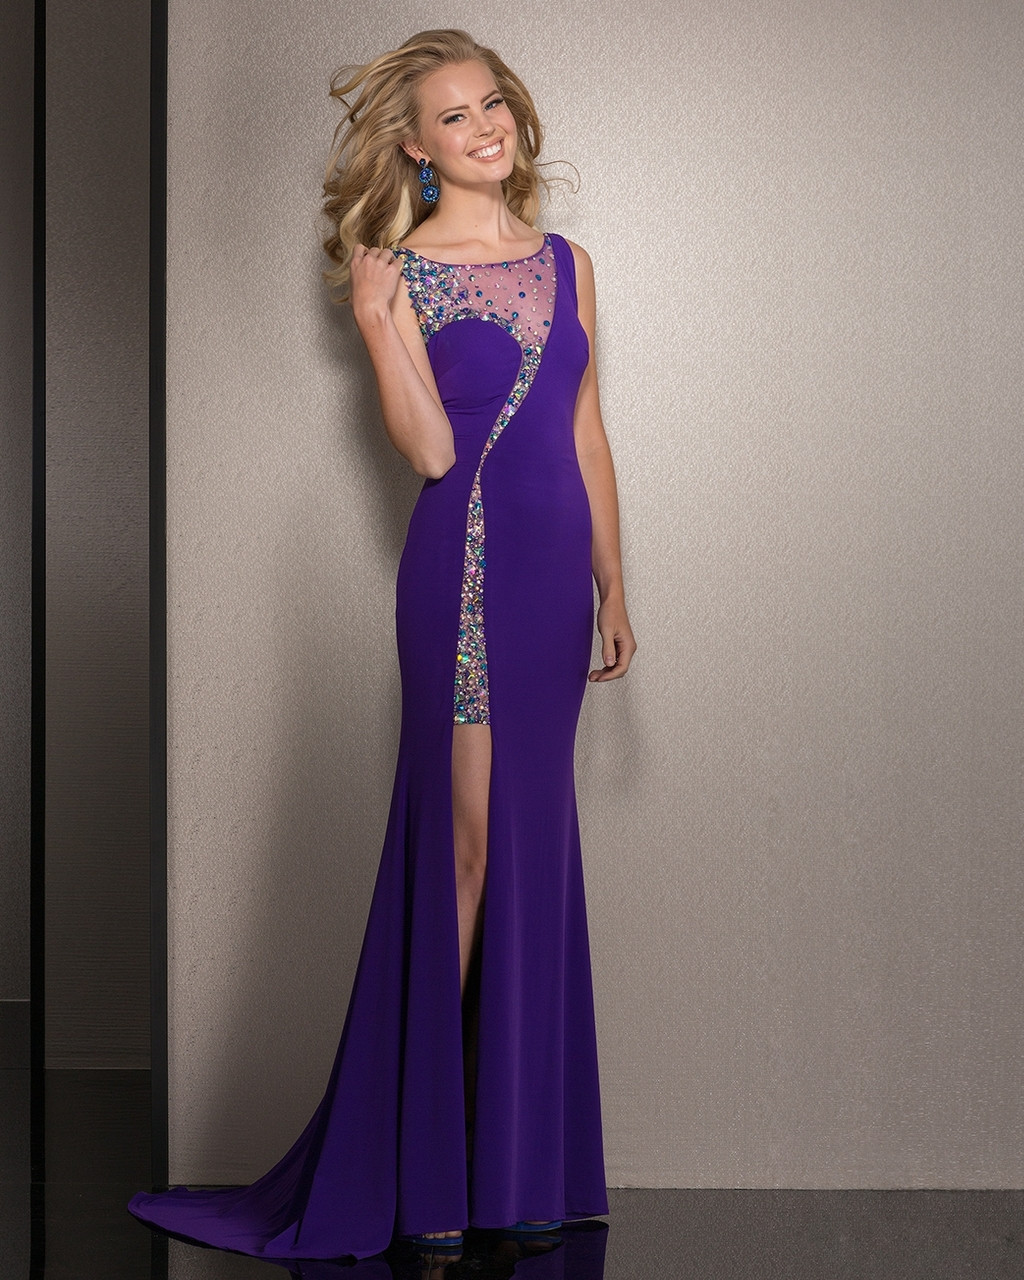 94a851eb3a2 Clarisse 2581 Prom Dress - Prom-Avenue